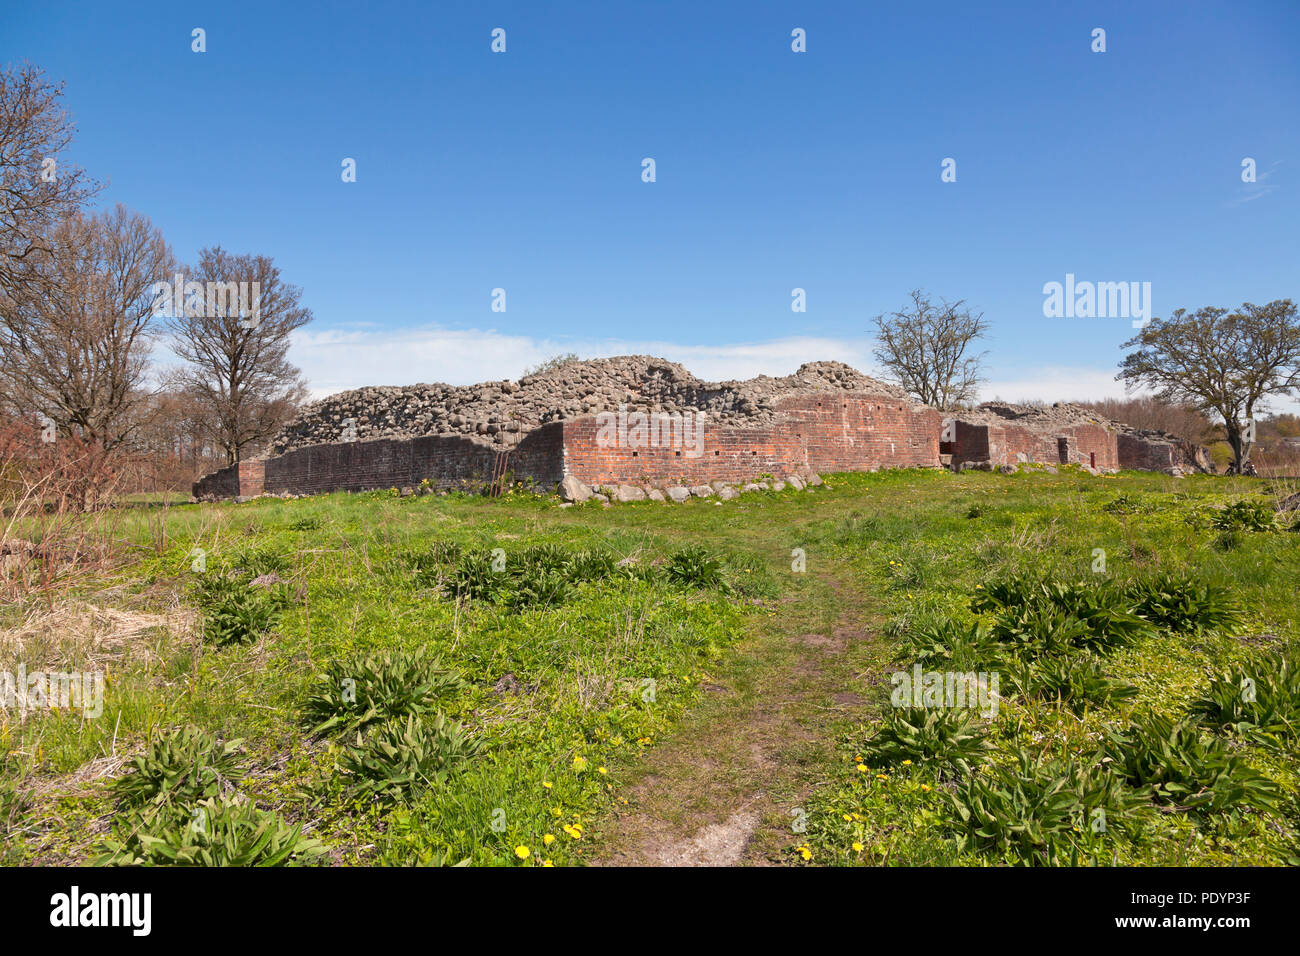 The Gurre Castle Ruin, a Royal castle from the 12th century in North Zealand near Elsinore, Helsingør, in Denmark from the early medieval times. - Stock Image